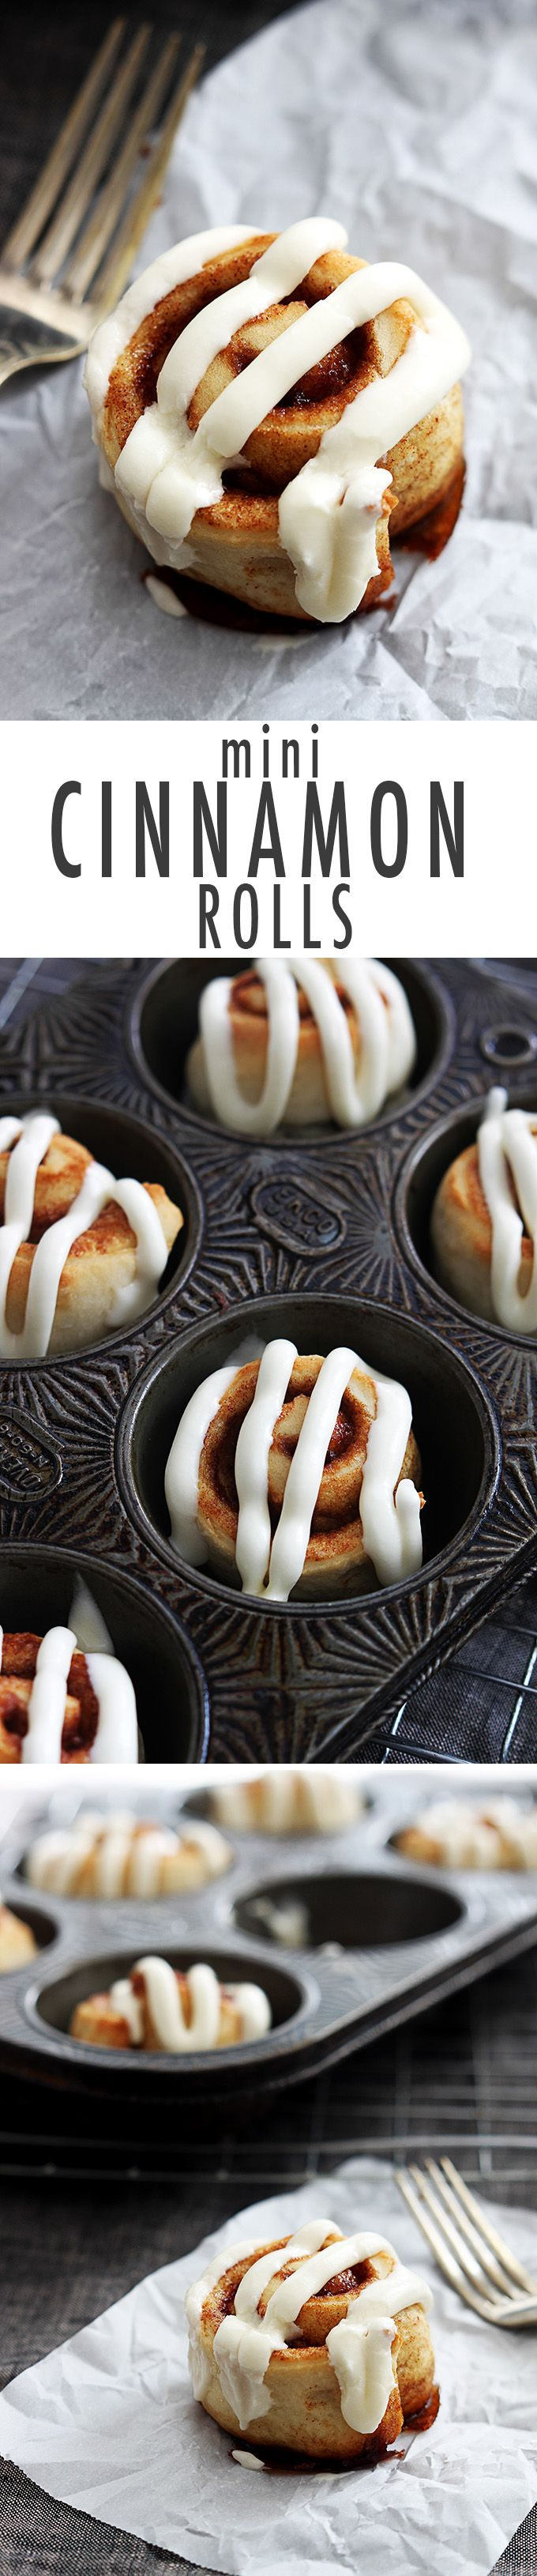 Fluffy mini bite-sized cinnamon rolls with a 5-ingredient dough made from scratch in just 30 minutes, all topped with the best cream cheese frosting.